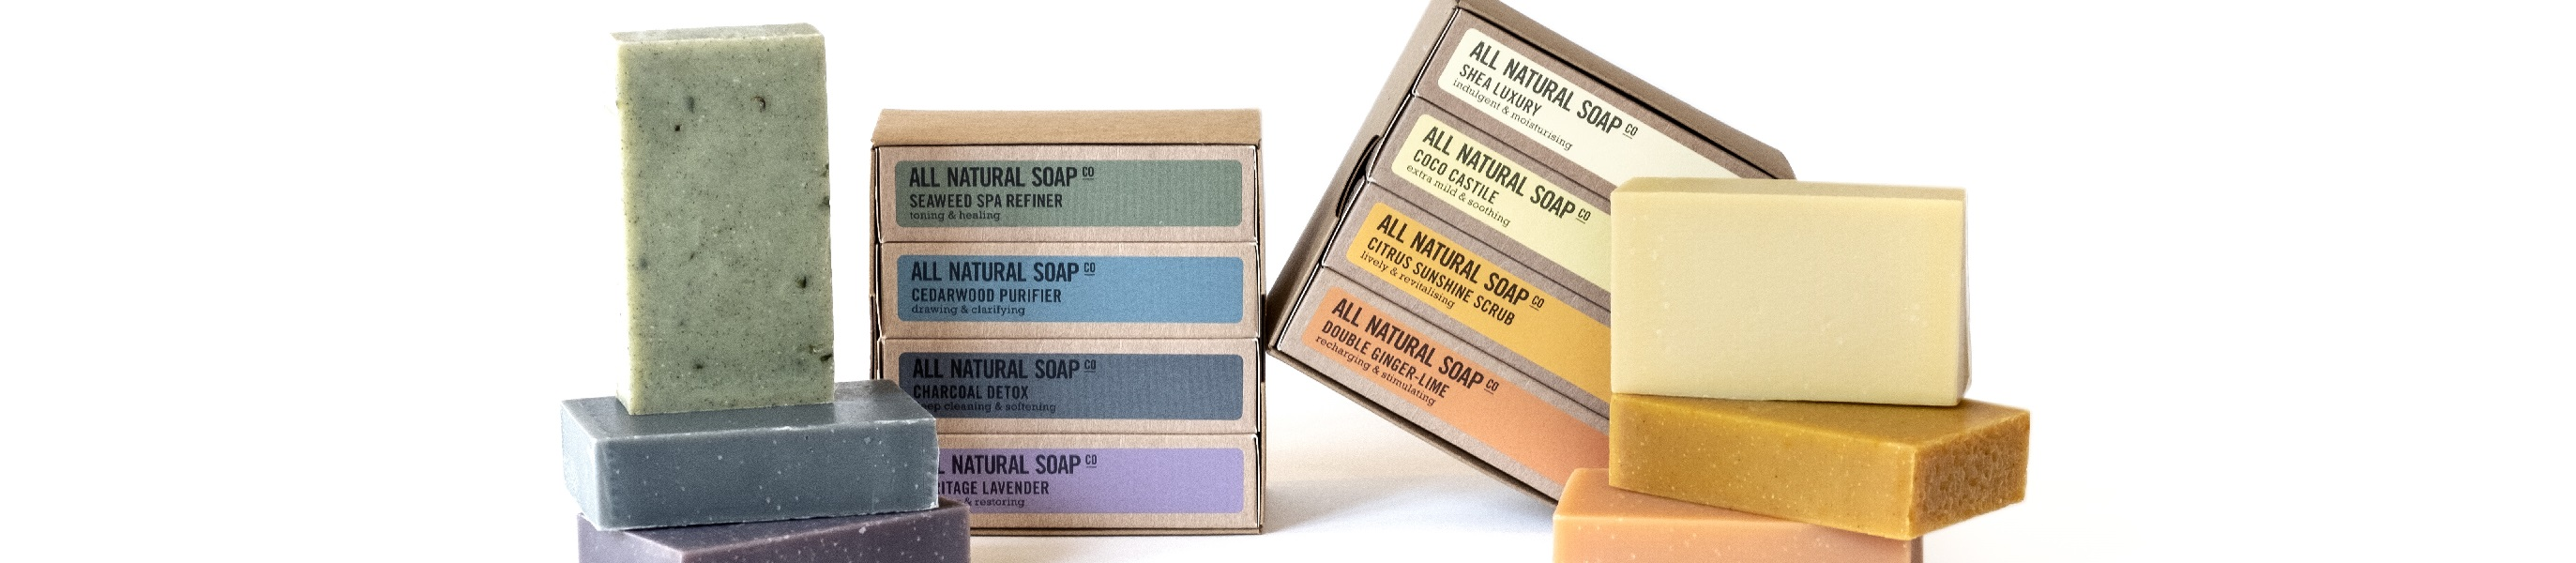 Trial-Box-Slider-_ALL-NATURAL-SOAP-Co